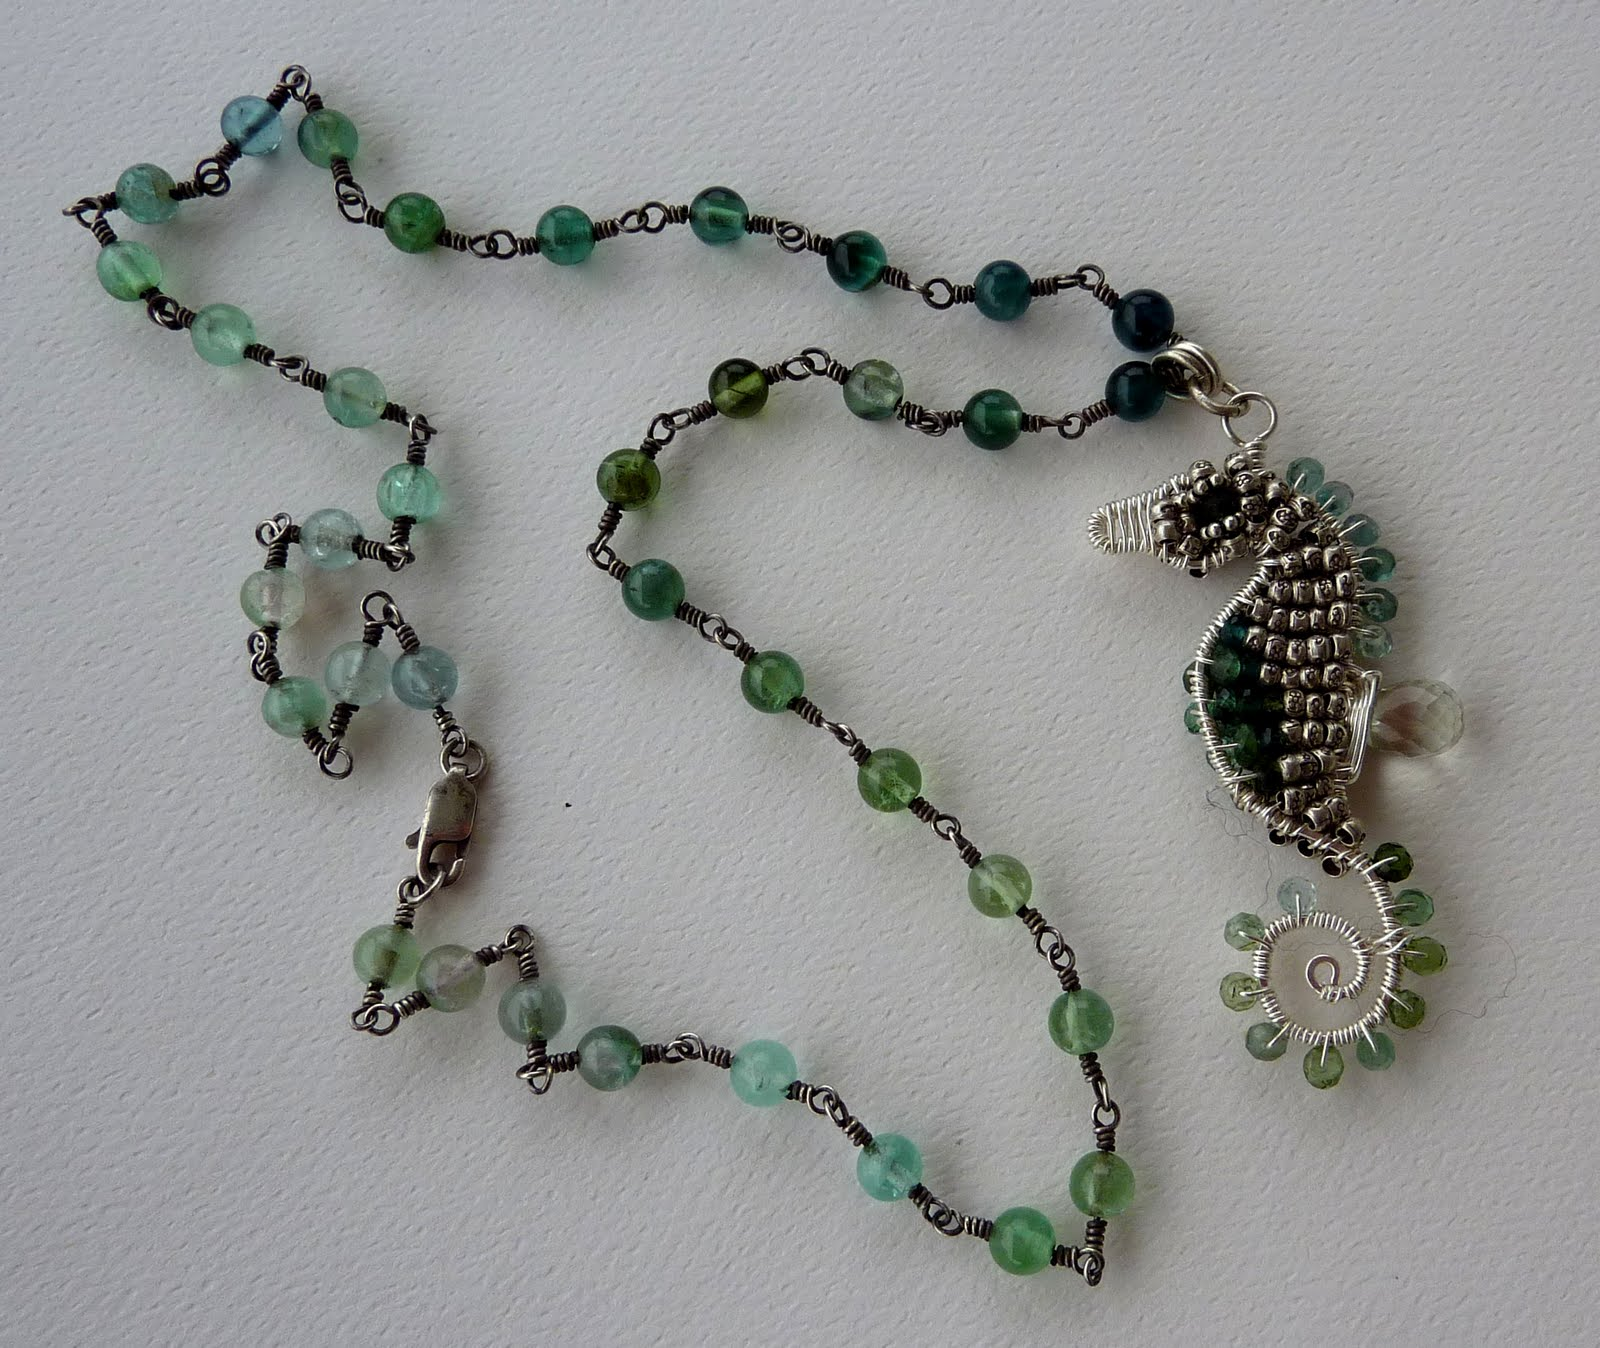 pippi\'s jewelry journey: 2011 Year Of The Seahorse